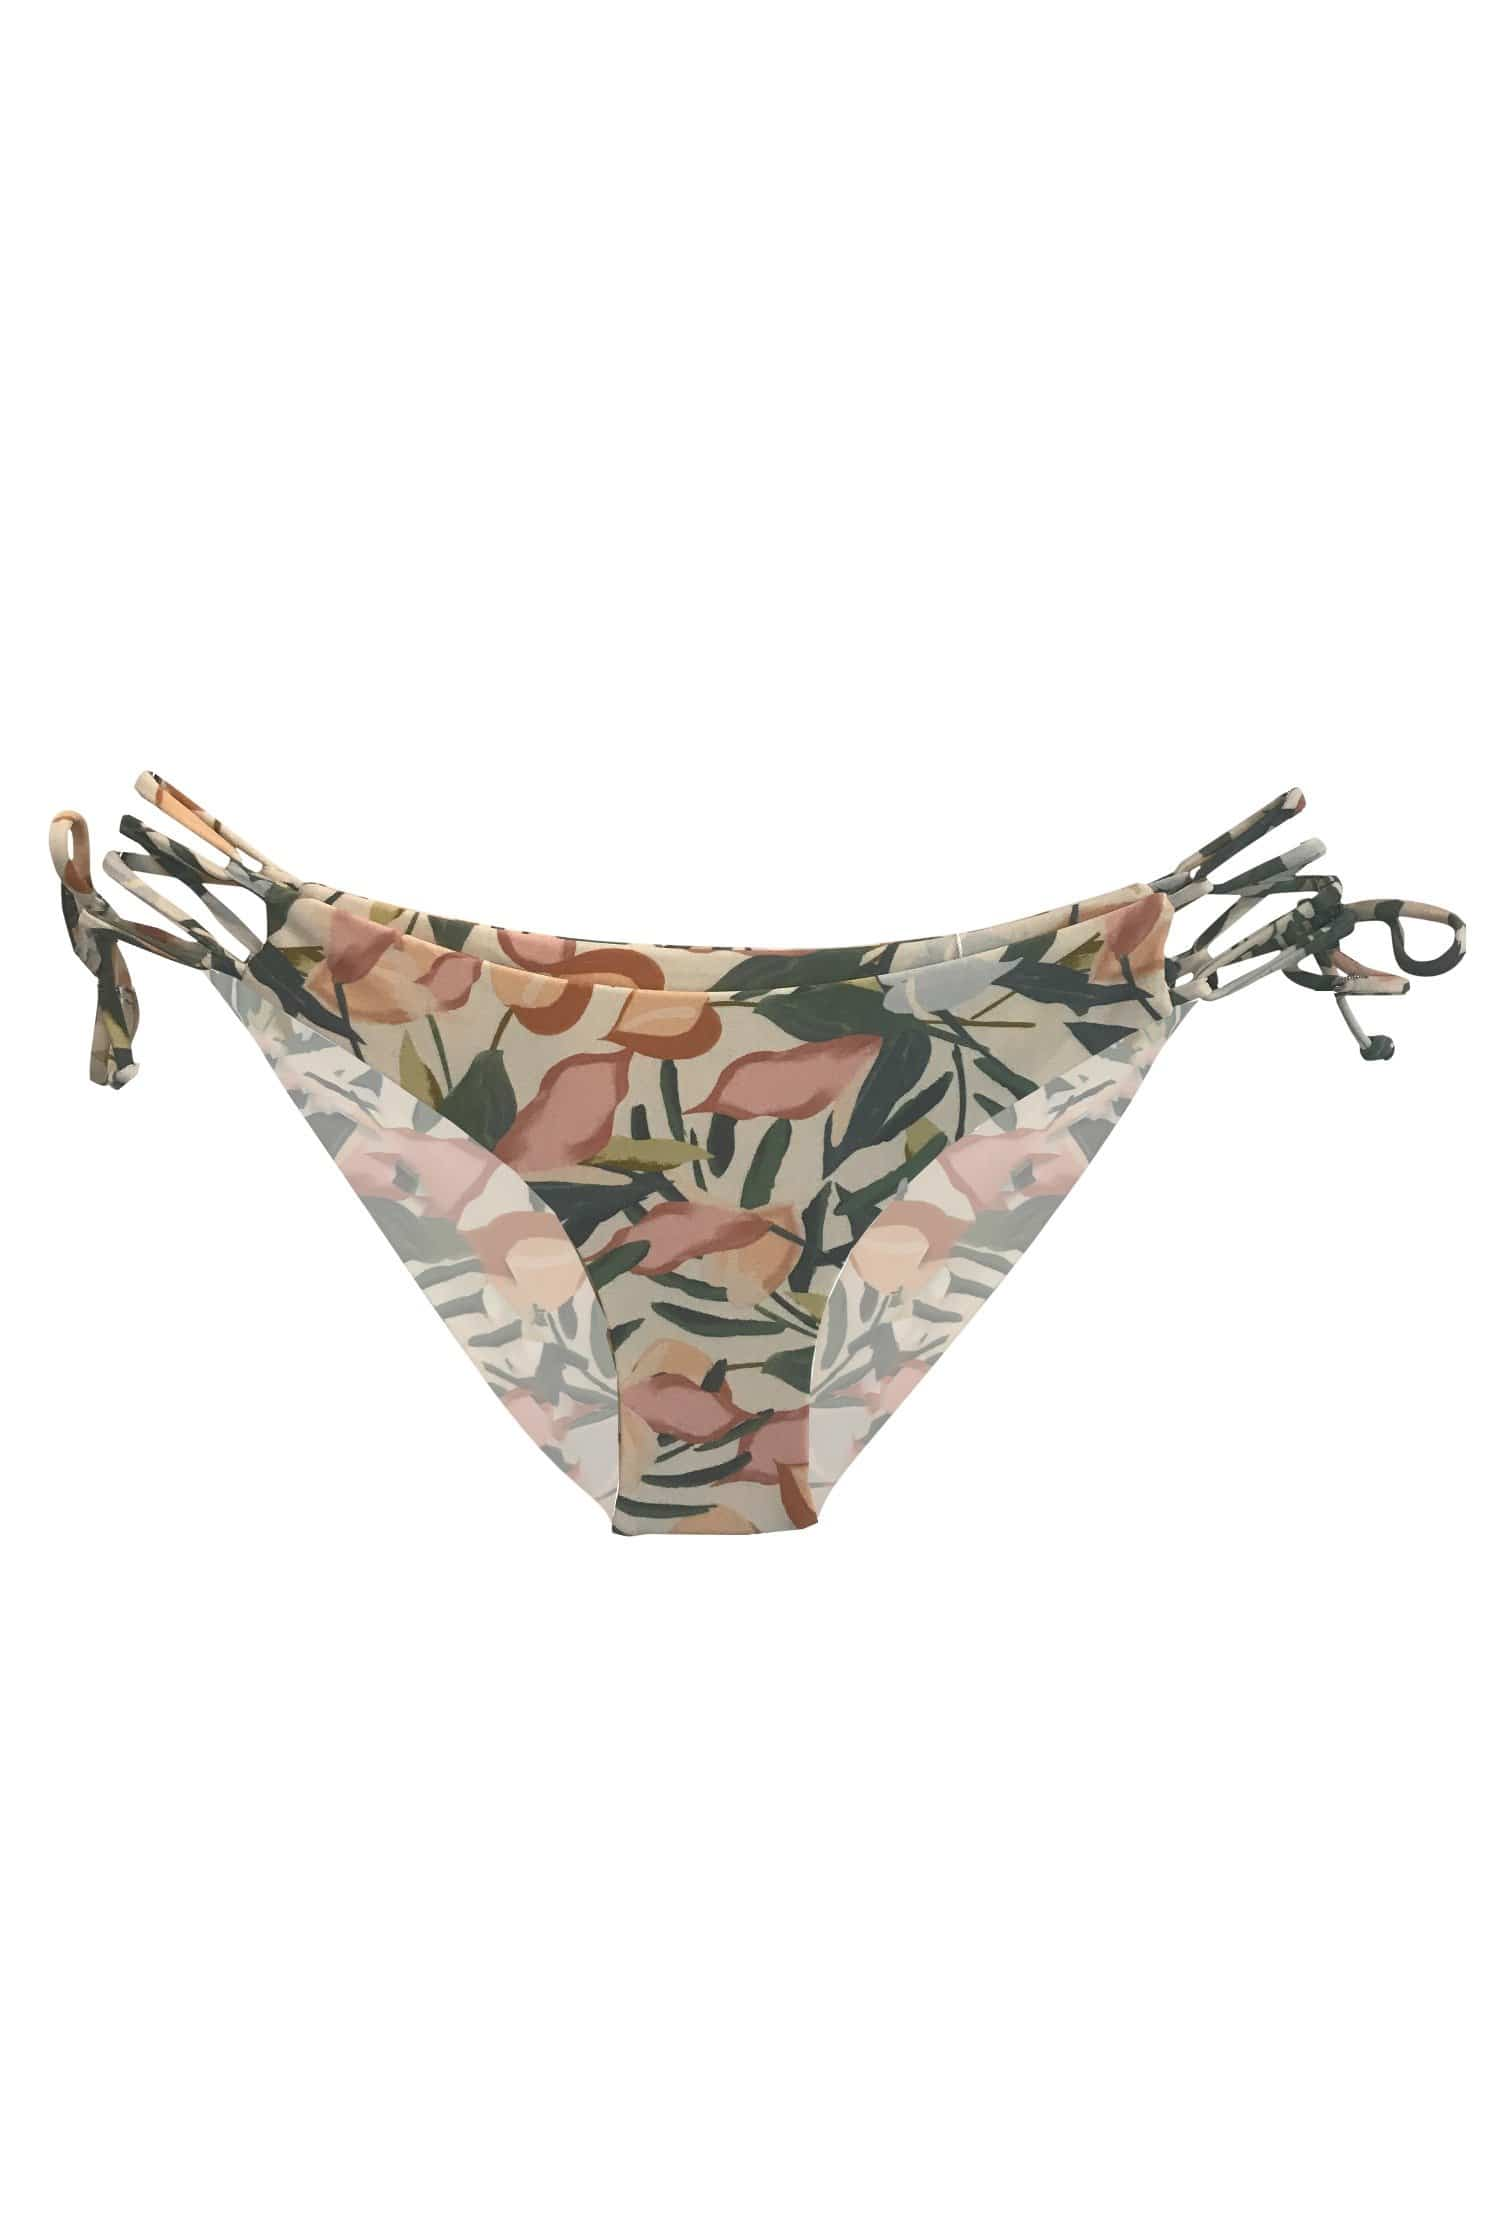 Tahiti Bottom Full Vintage Floral